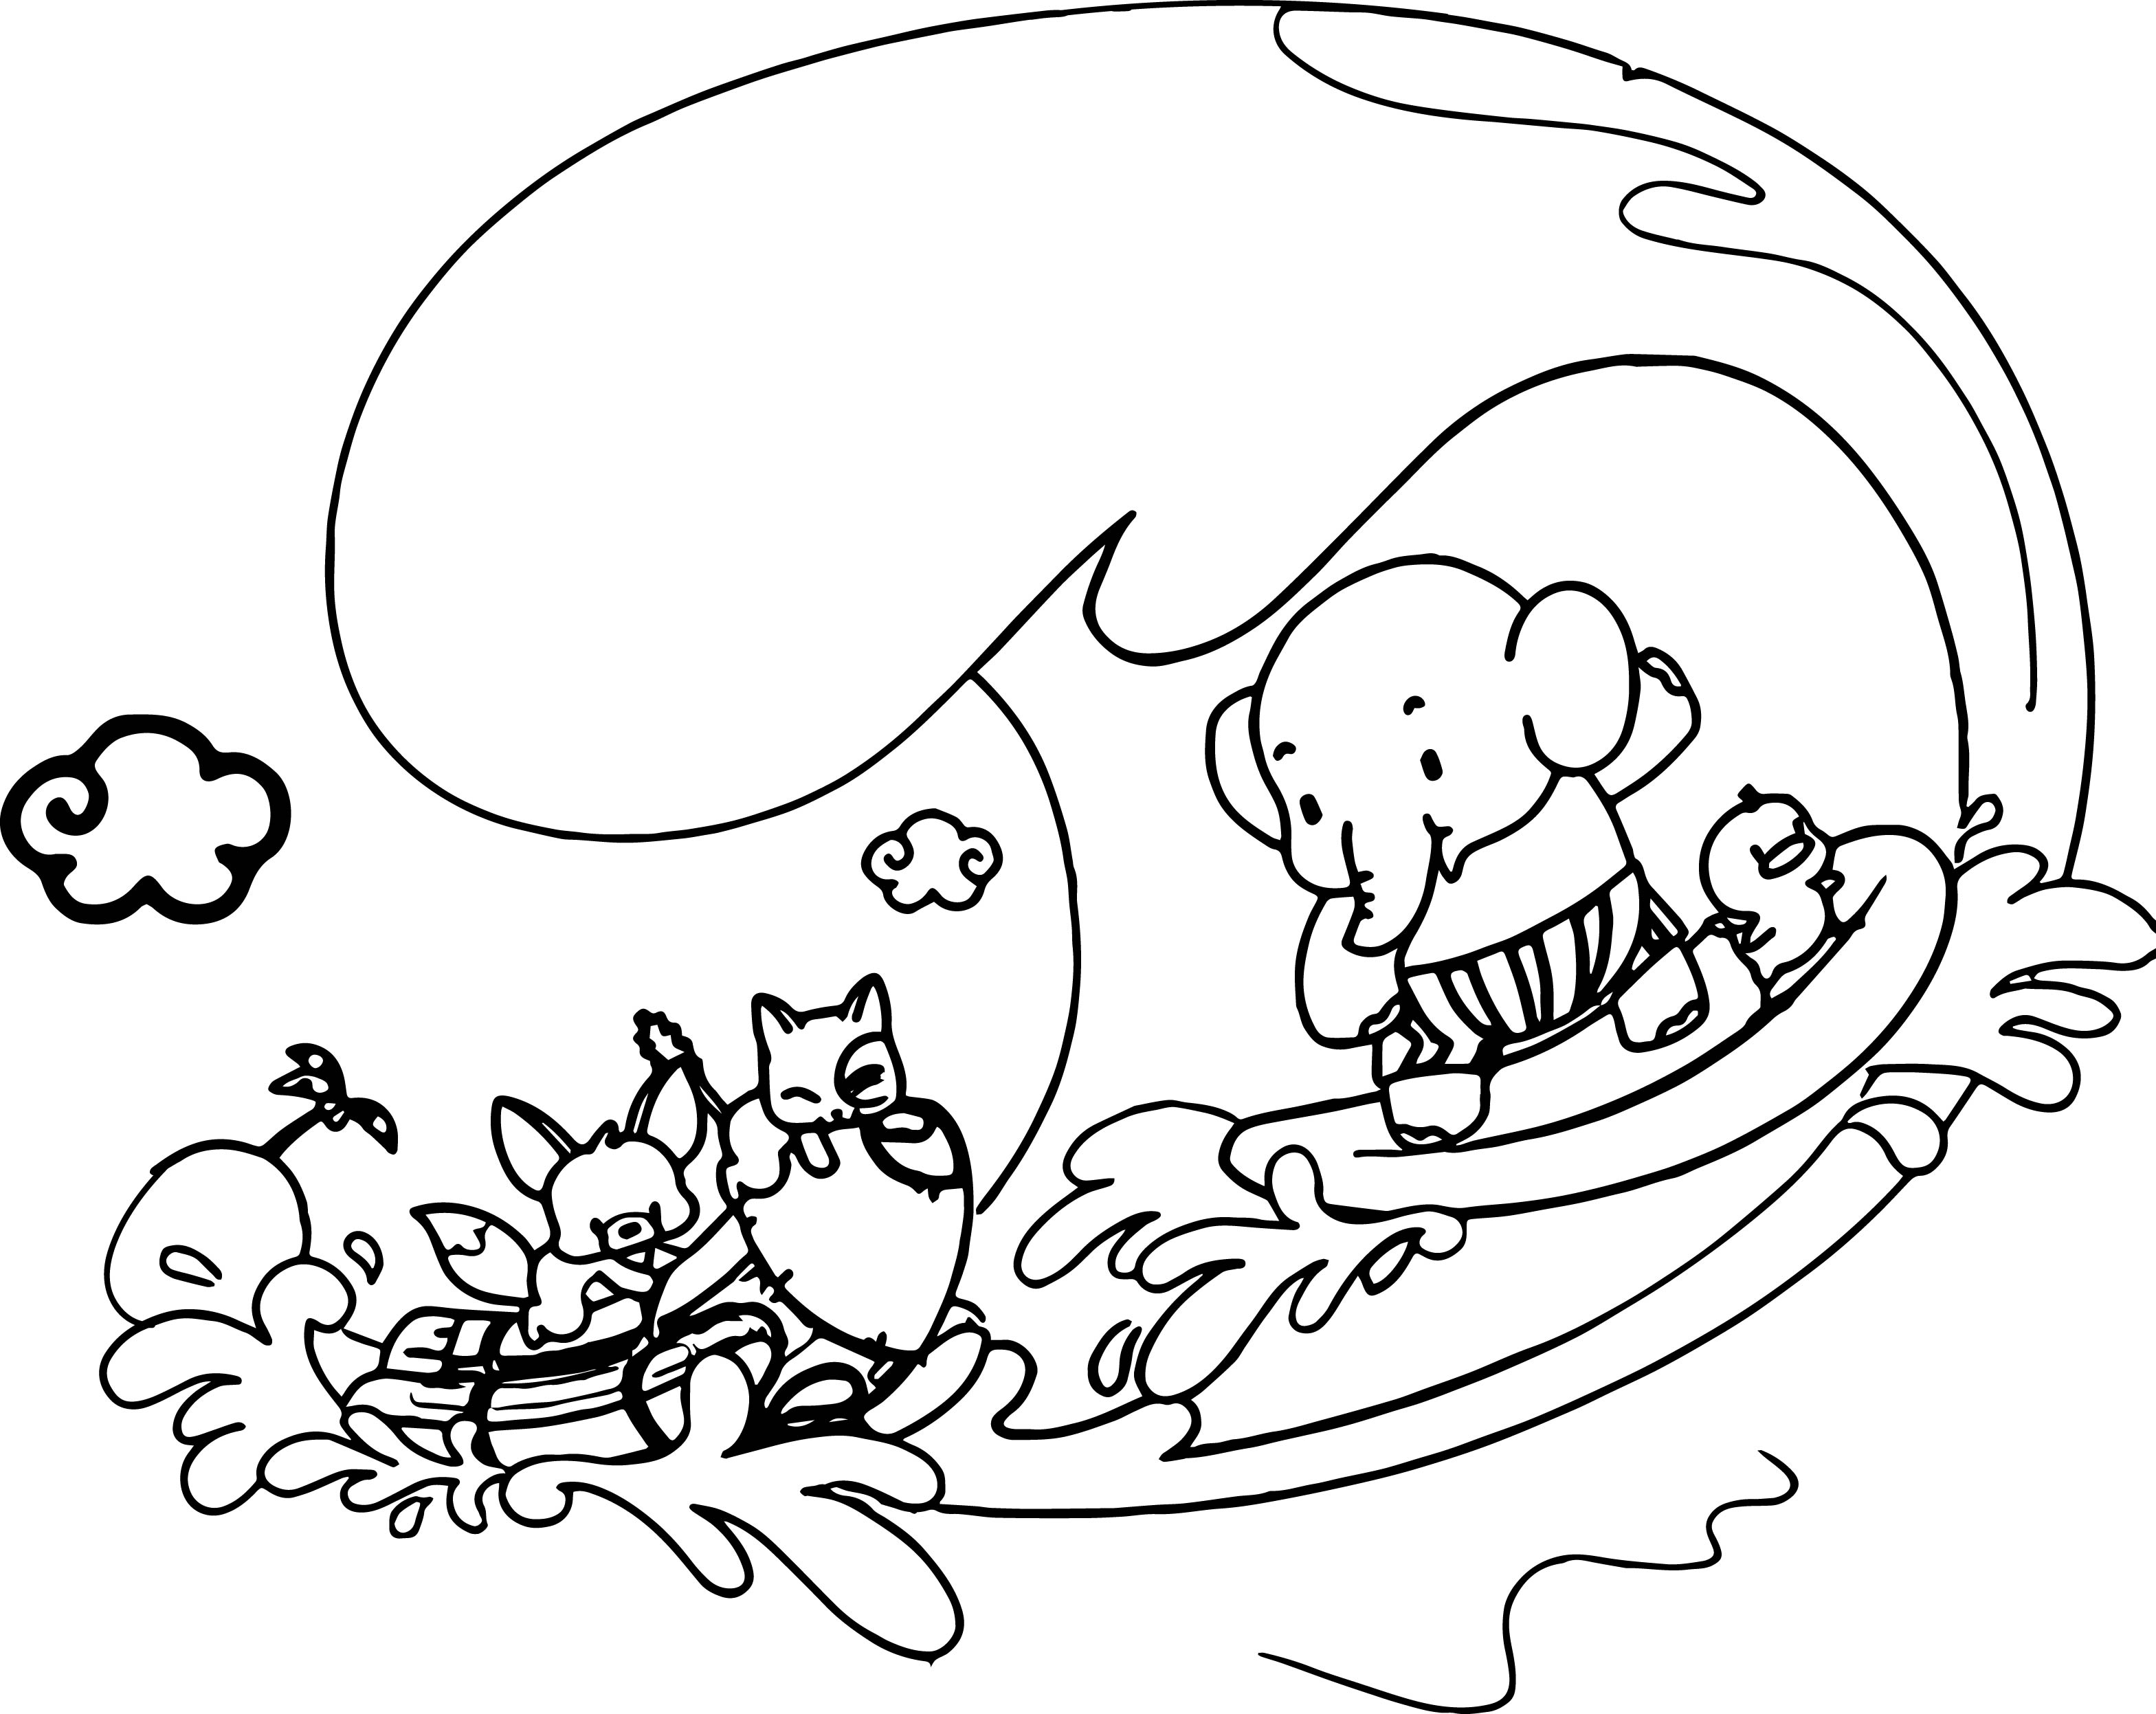 Elephant Coloring Page 103